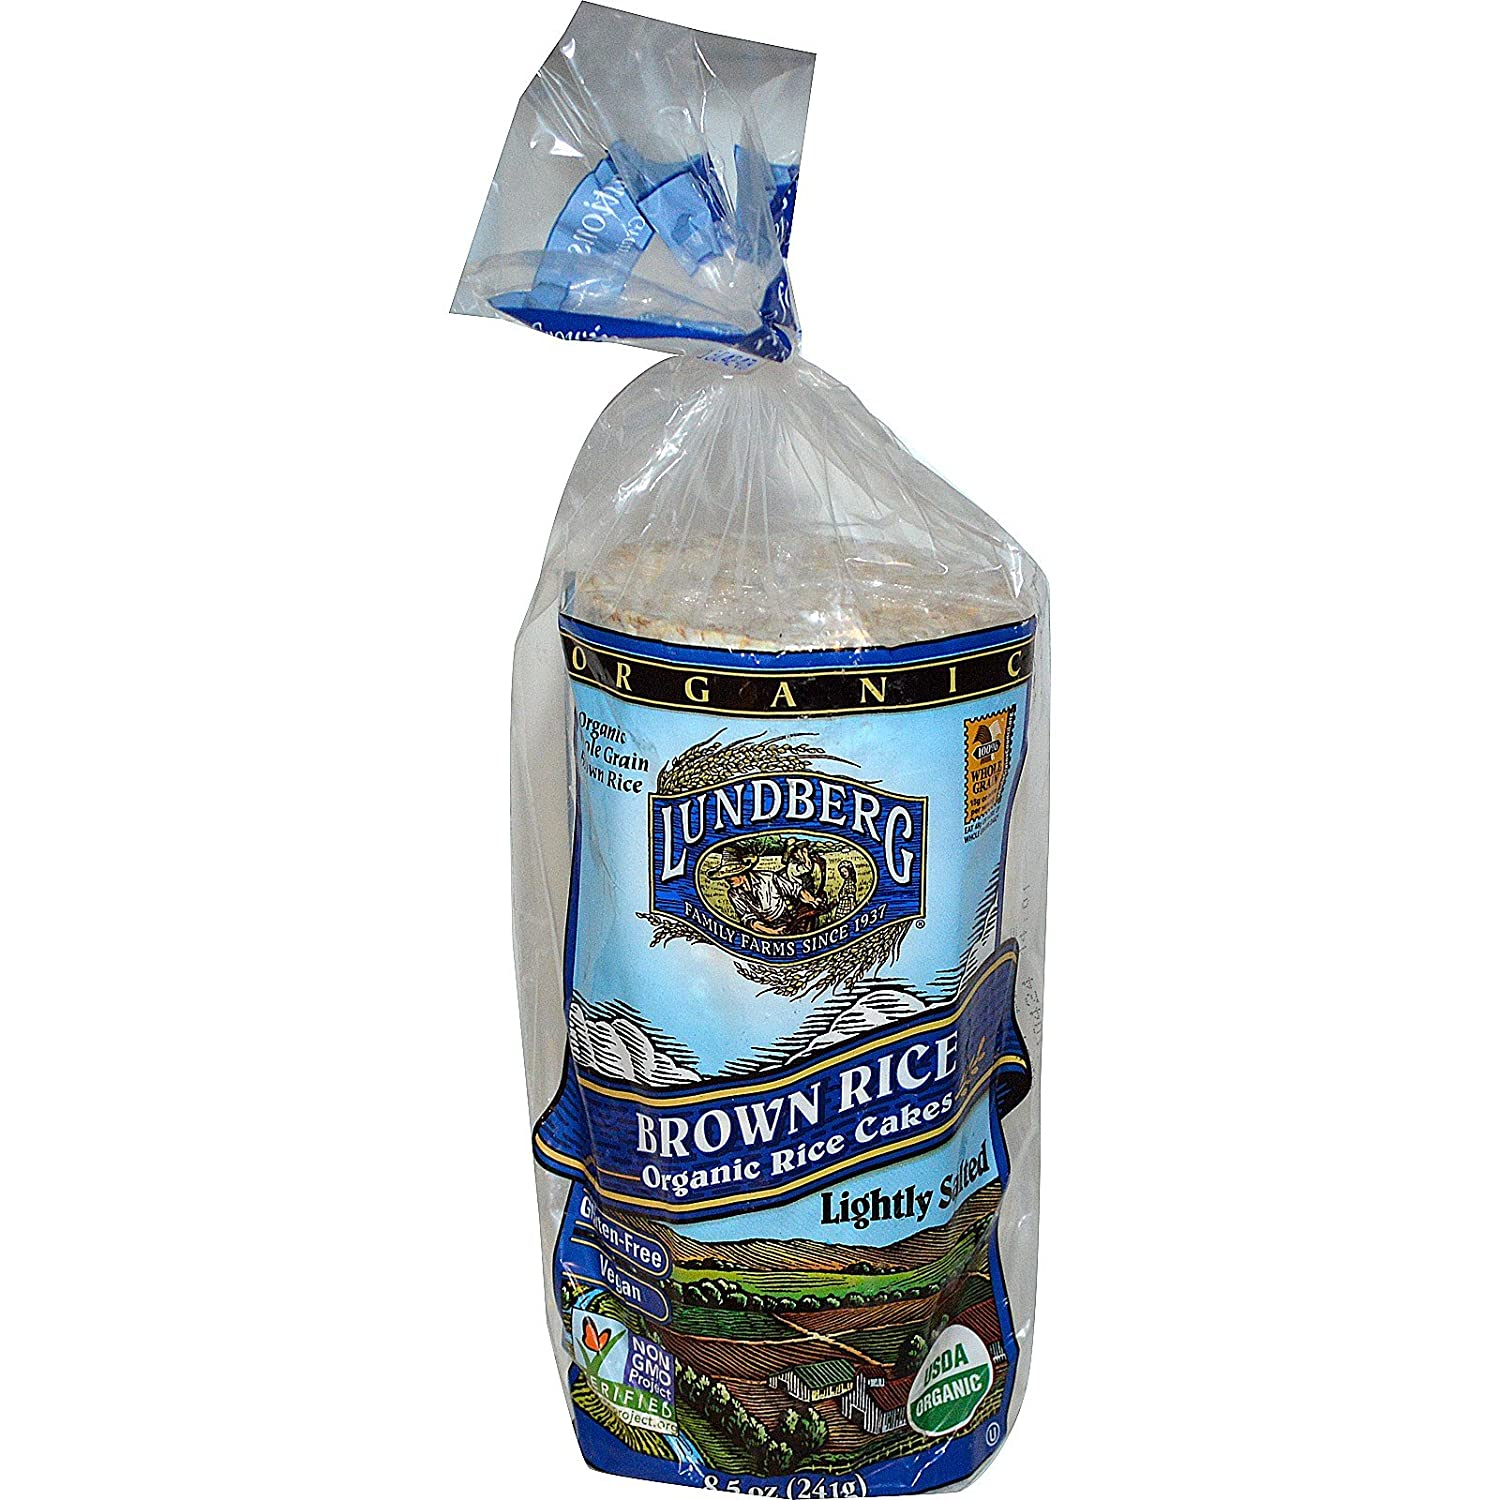 Lundberg Brown low-pricing Rice Organic Cakes Salted Cheap mail order sales oz 8.5 Lightly